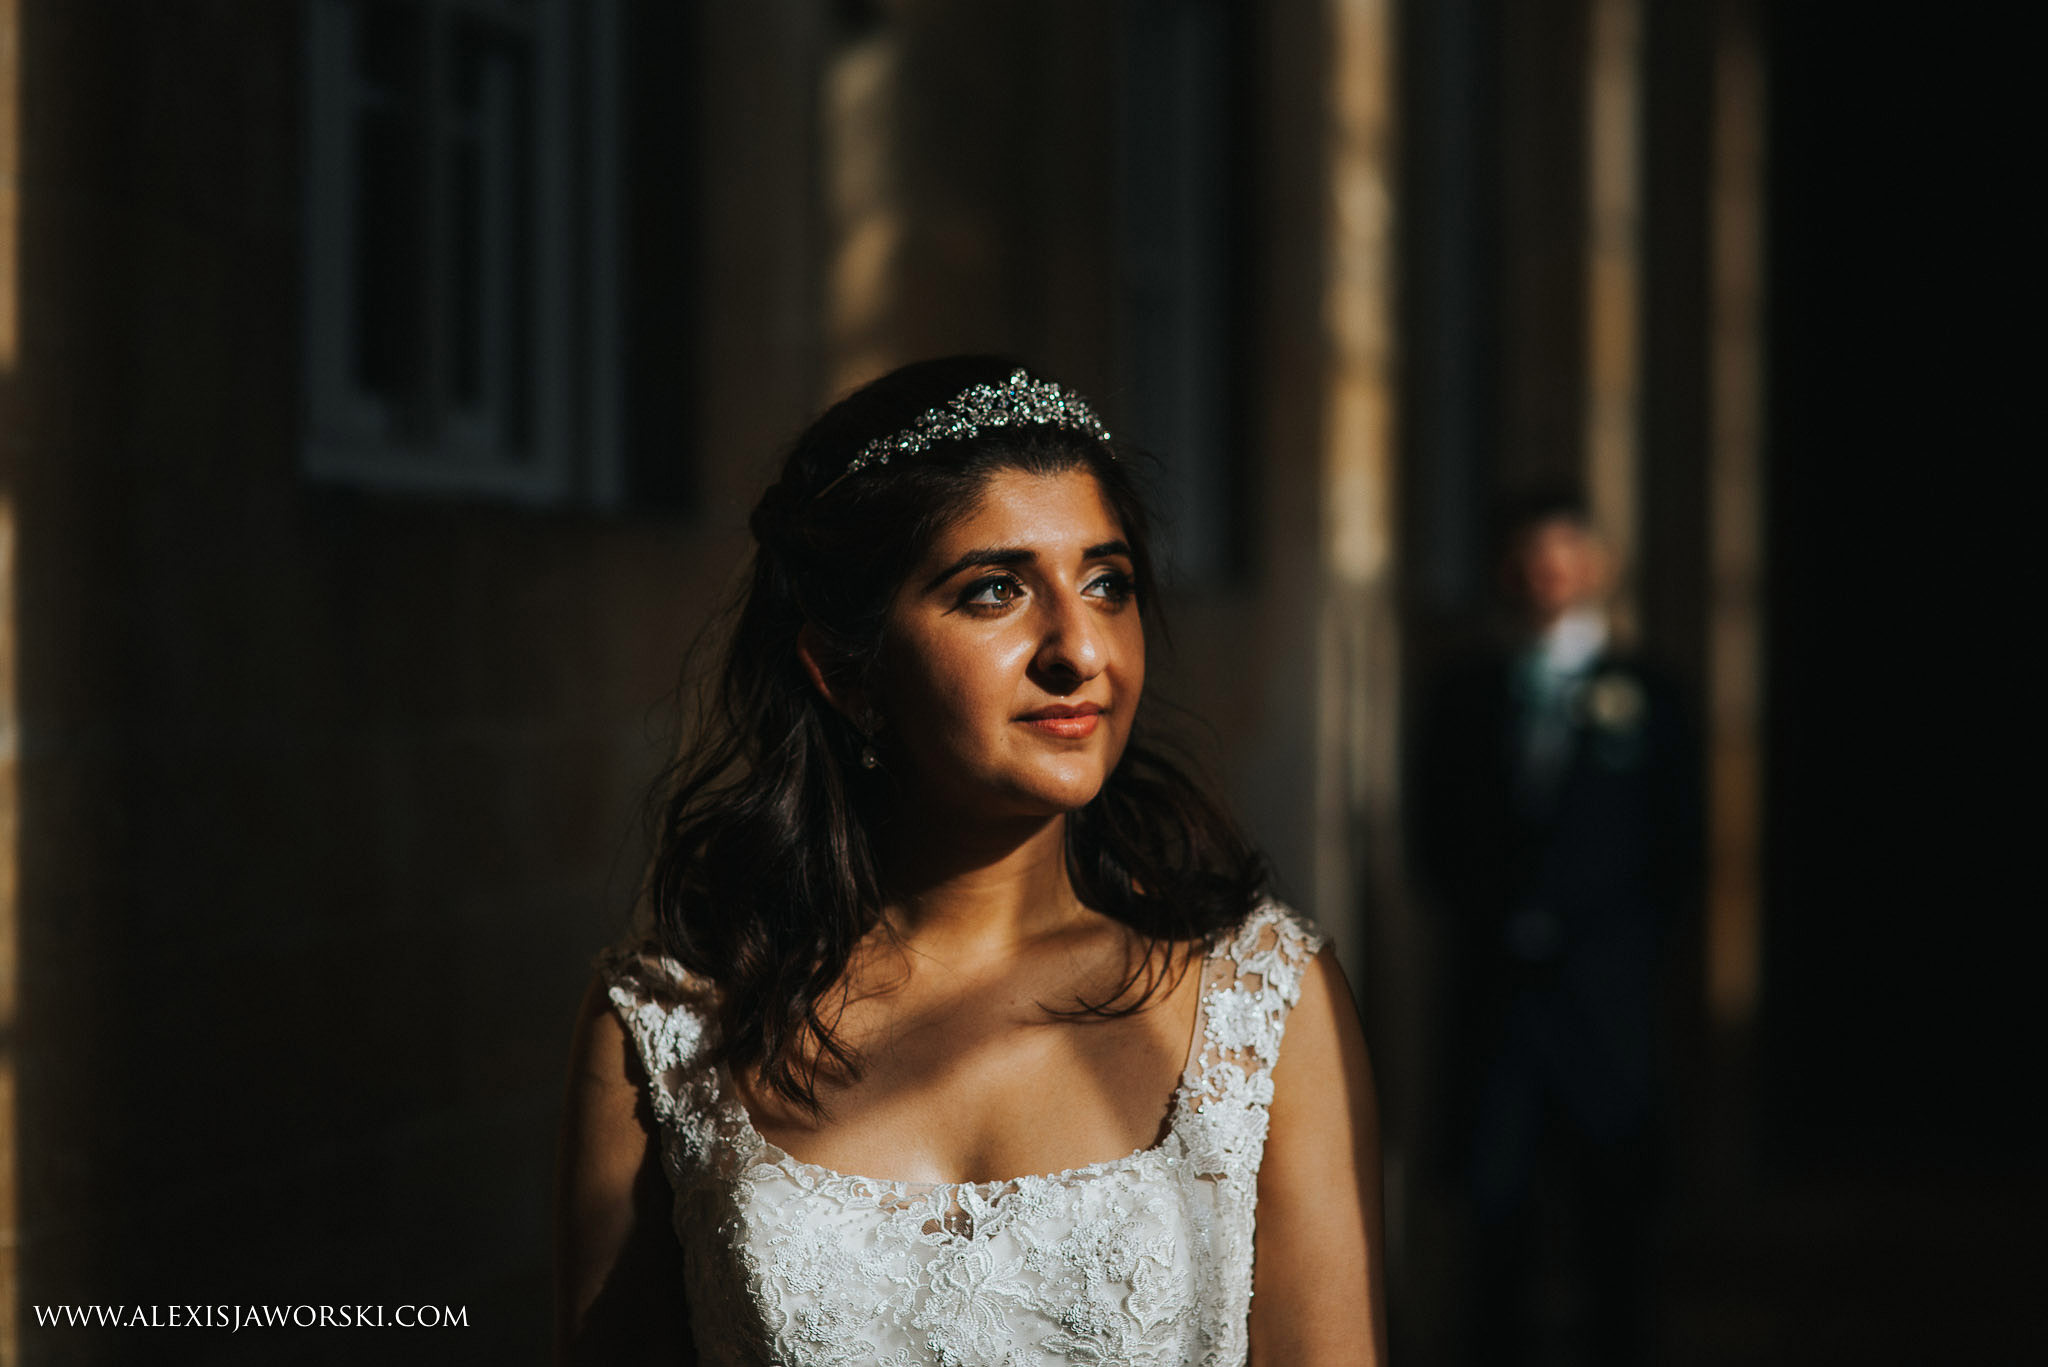 portrait of bride with groom in background